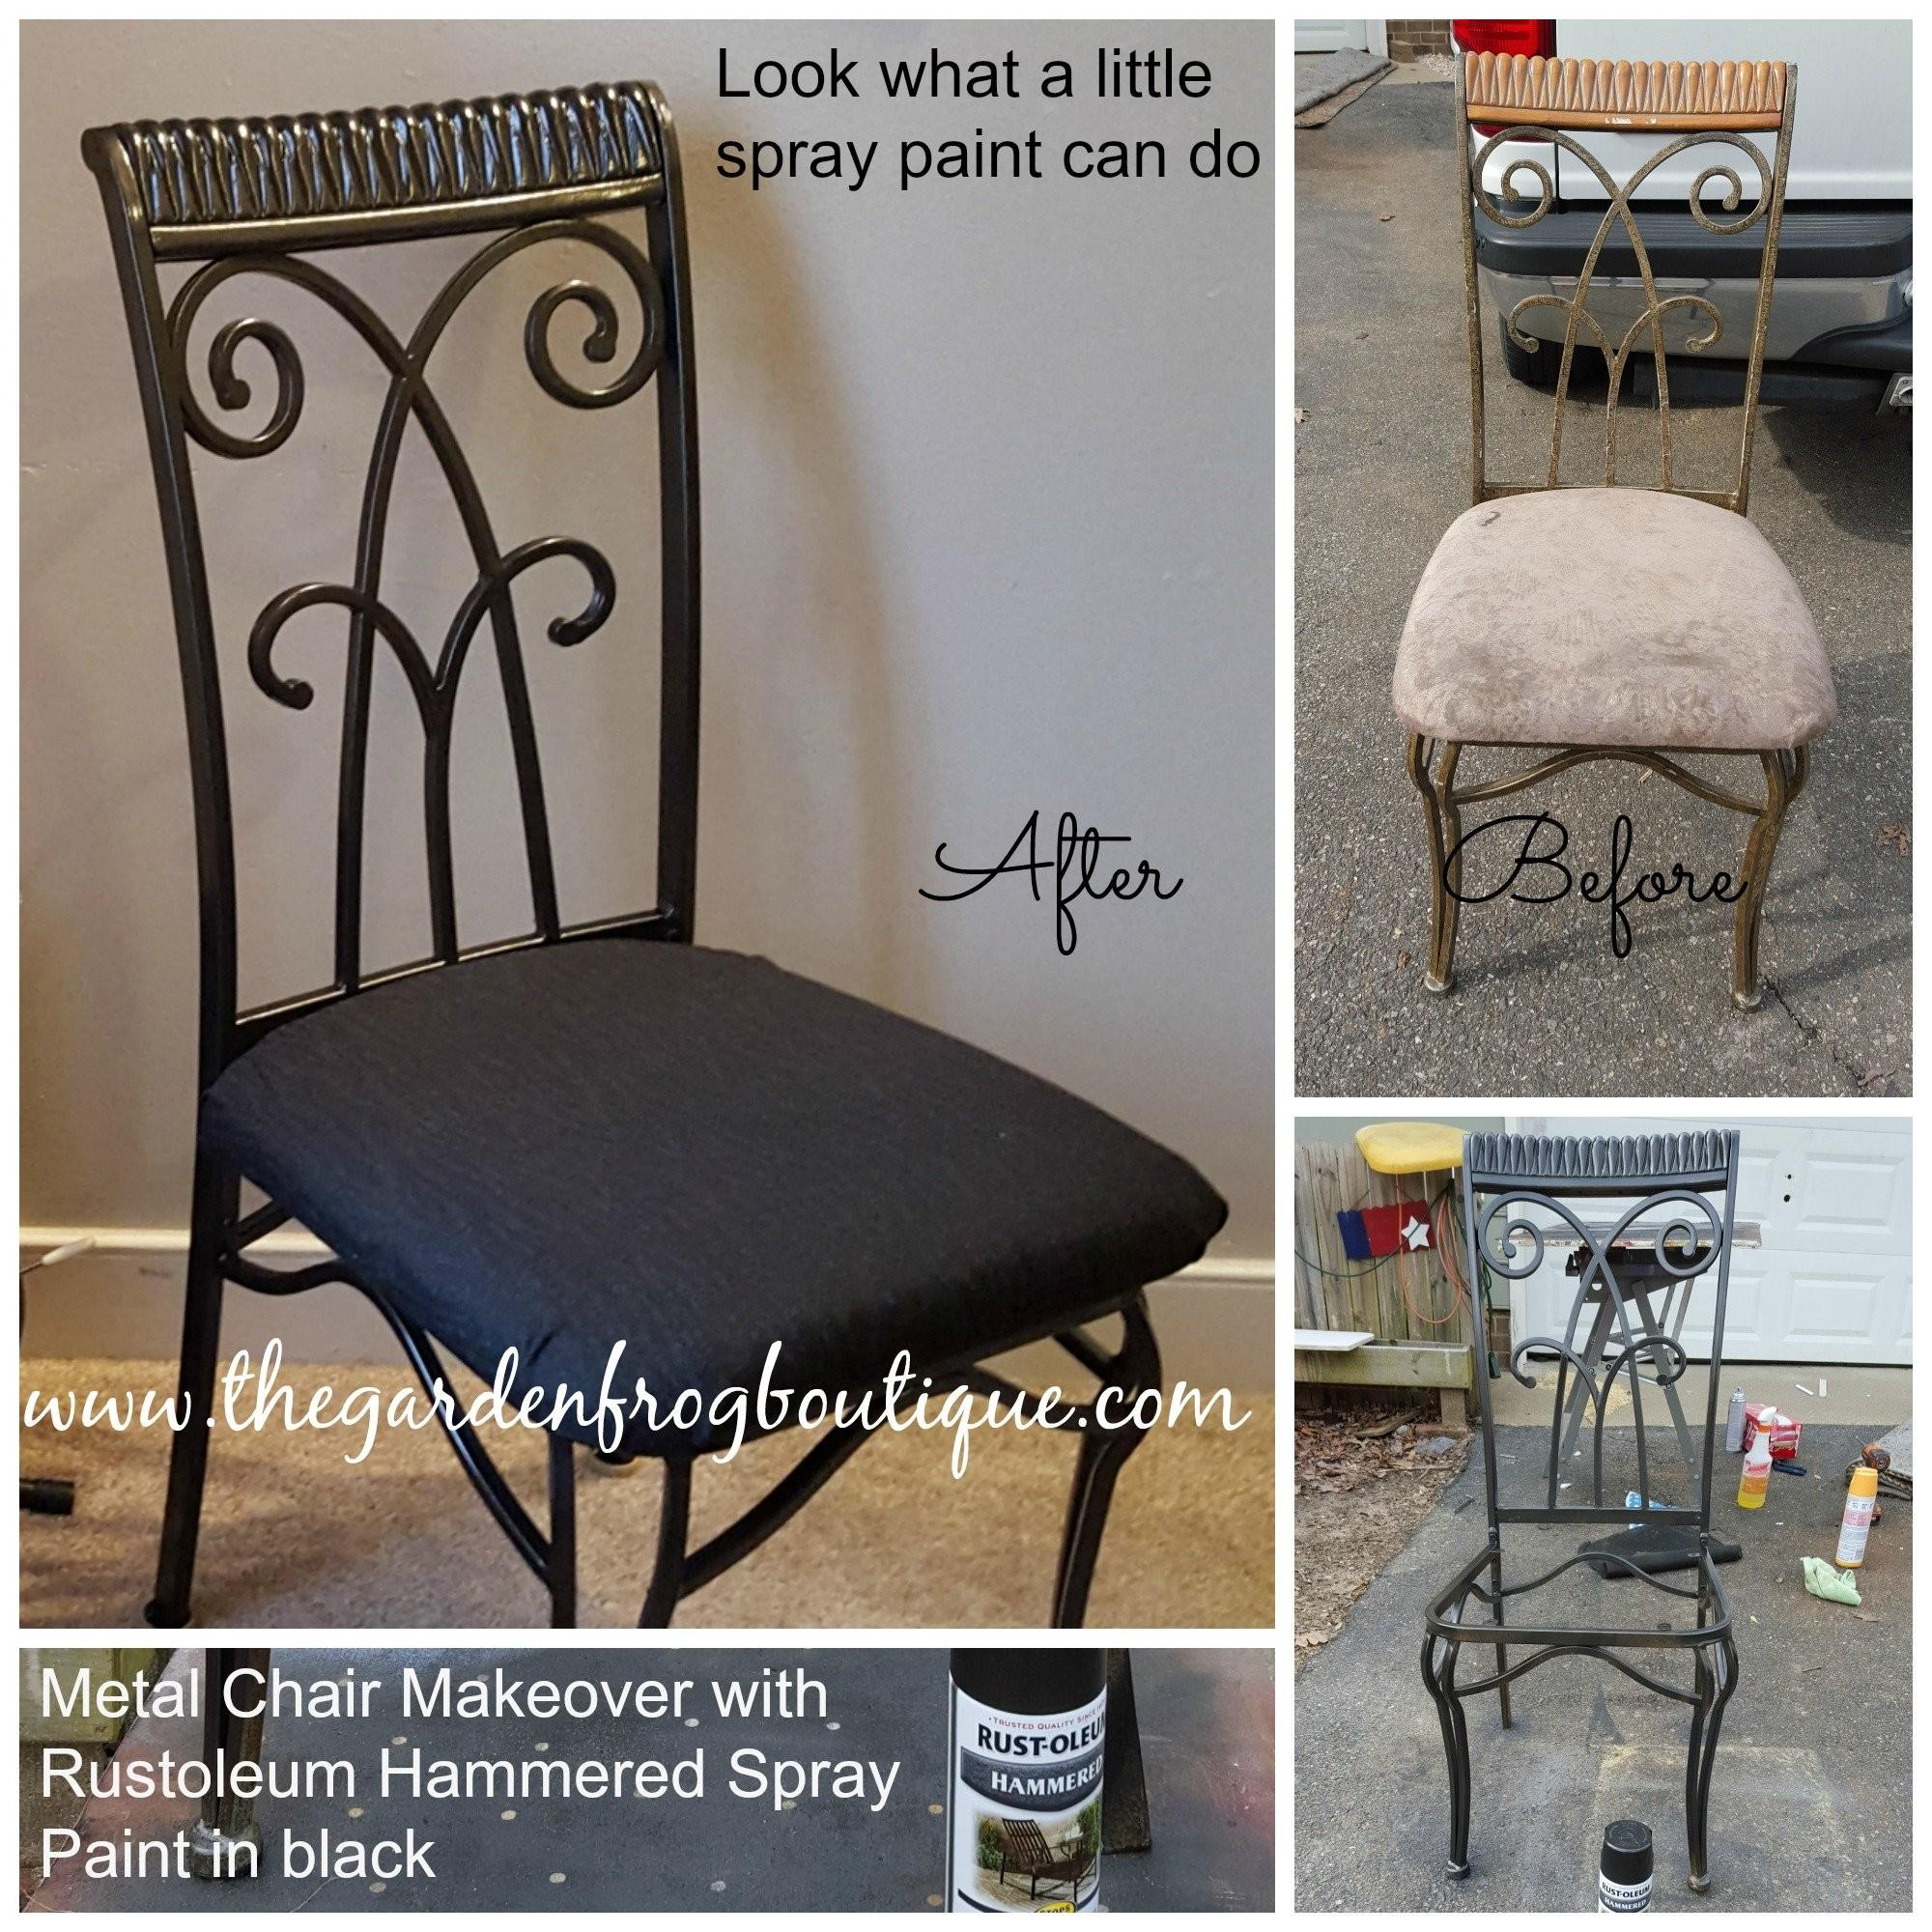 Metal Chair Makeover Rustoleum Hammered Spray Paint